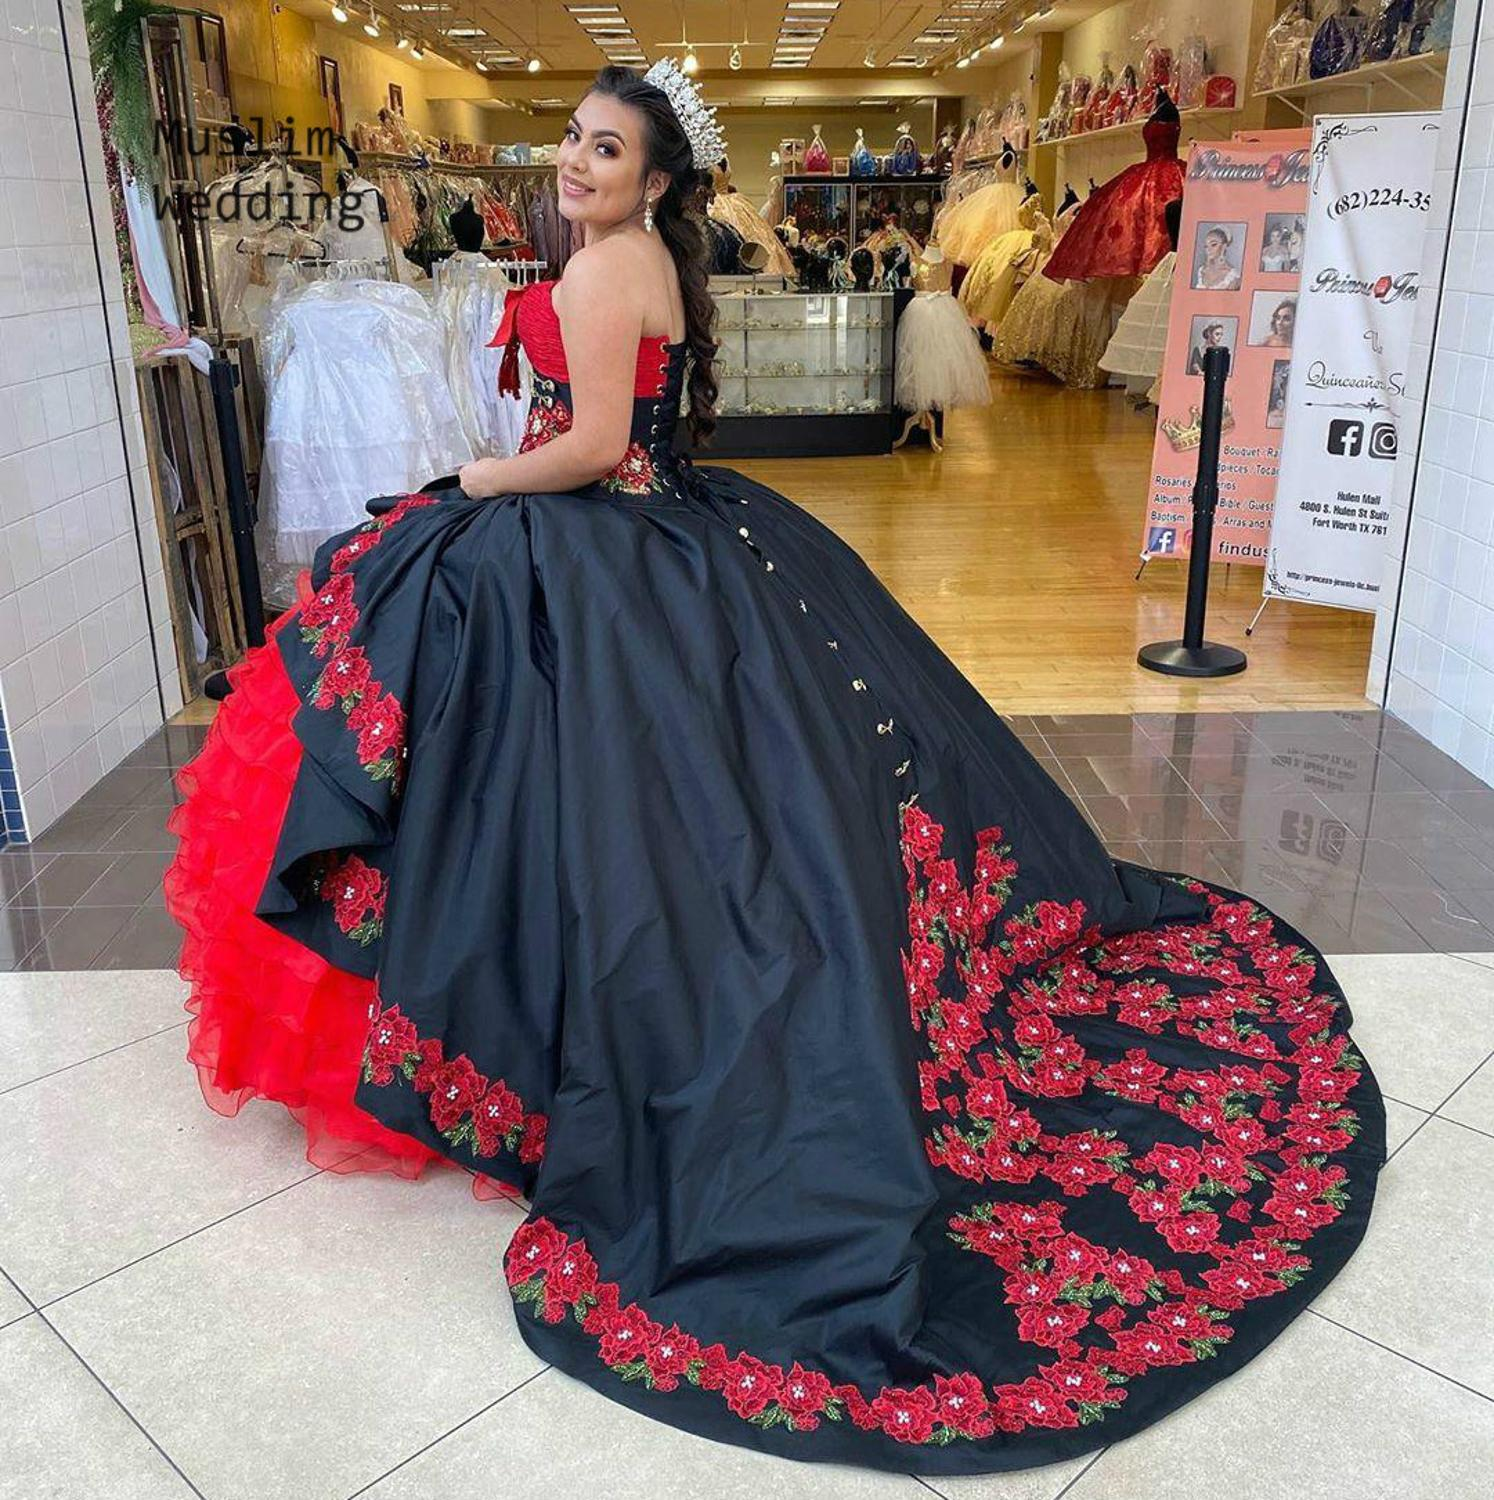 ready to ship quinceanera dresses,quinceanera dress great gatsby 2 piece big puffy,unique quinceanera dress puffy,charro quinceanera dress for sale,mexican quinceanera charro dress,floral embroidery quinceanera dress,embroidery sweet 16 dress,black and red quinceanera dress,custom design quinceanera dress,quinceanera designers for dress,designer quinceanera dress,